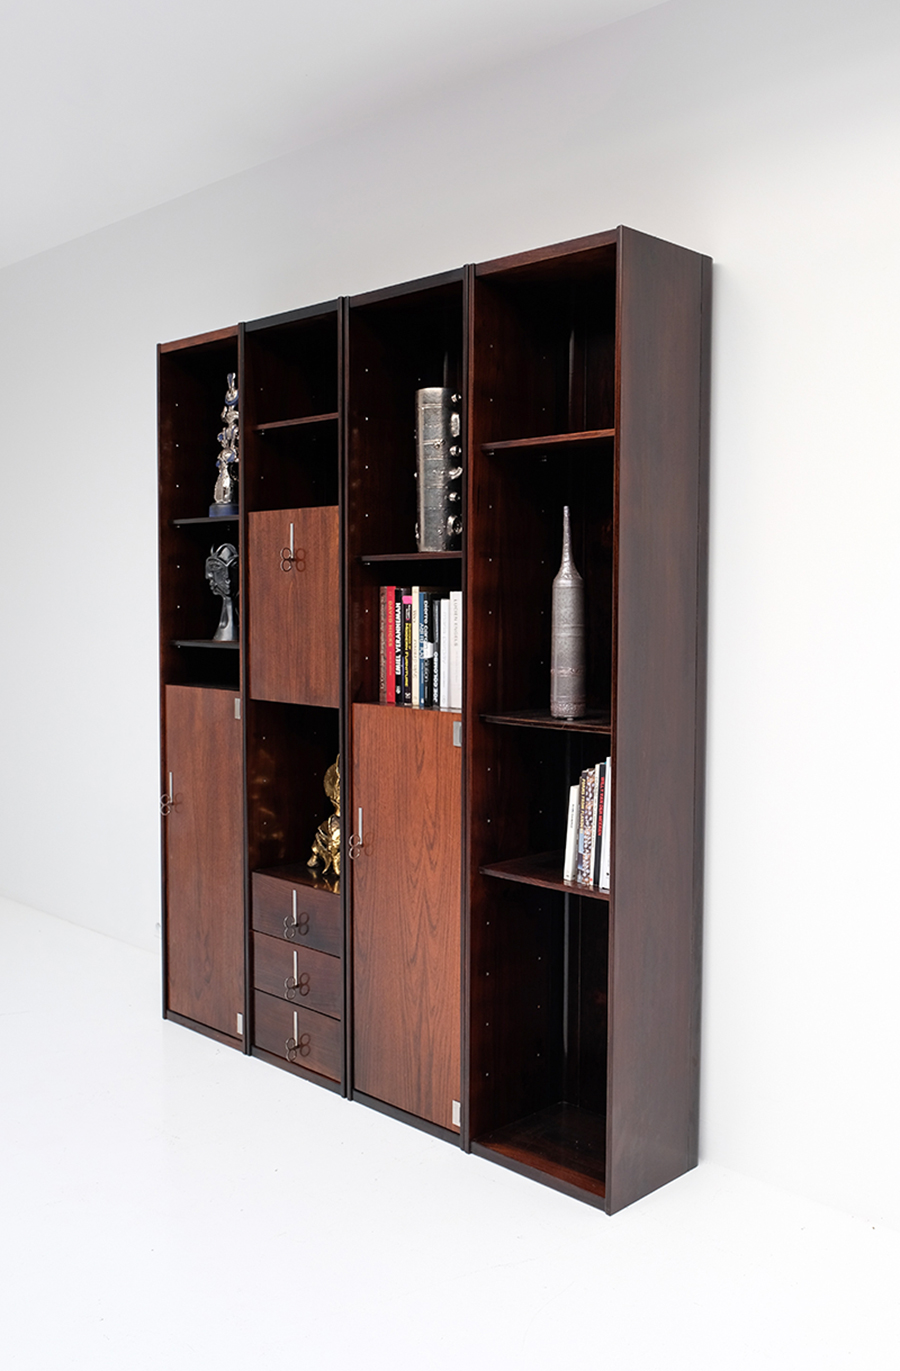 70s Double faced Bookcase / Room dividerimage 7